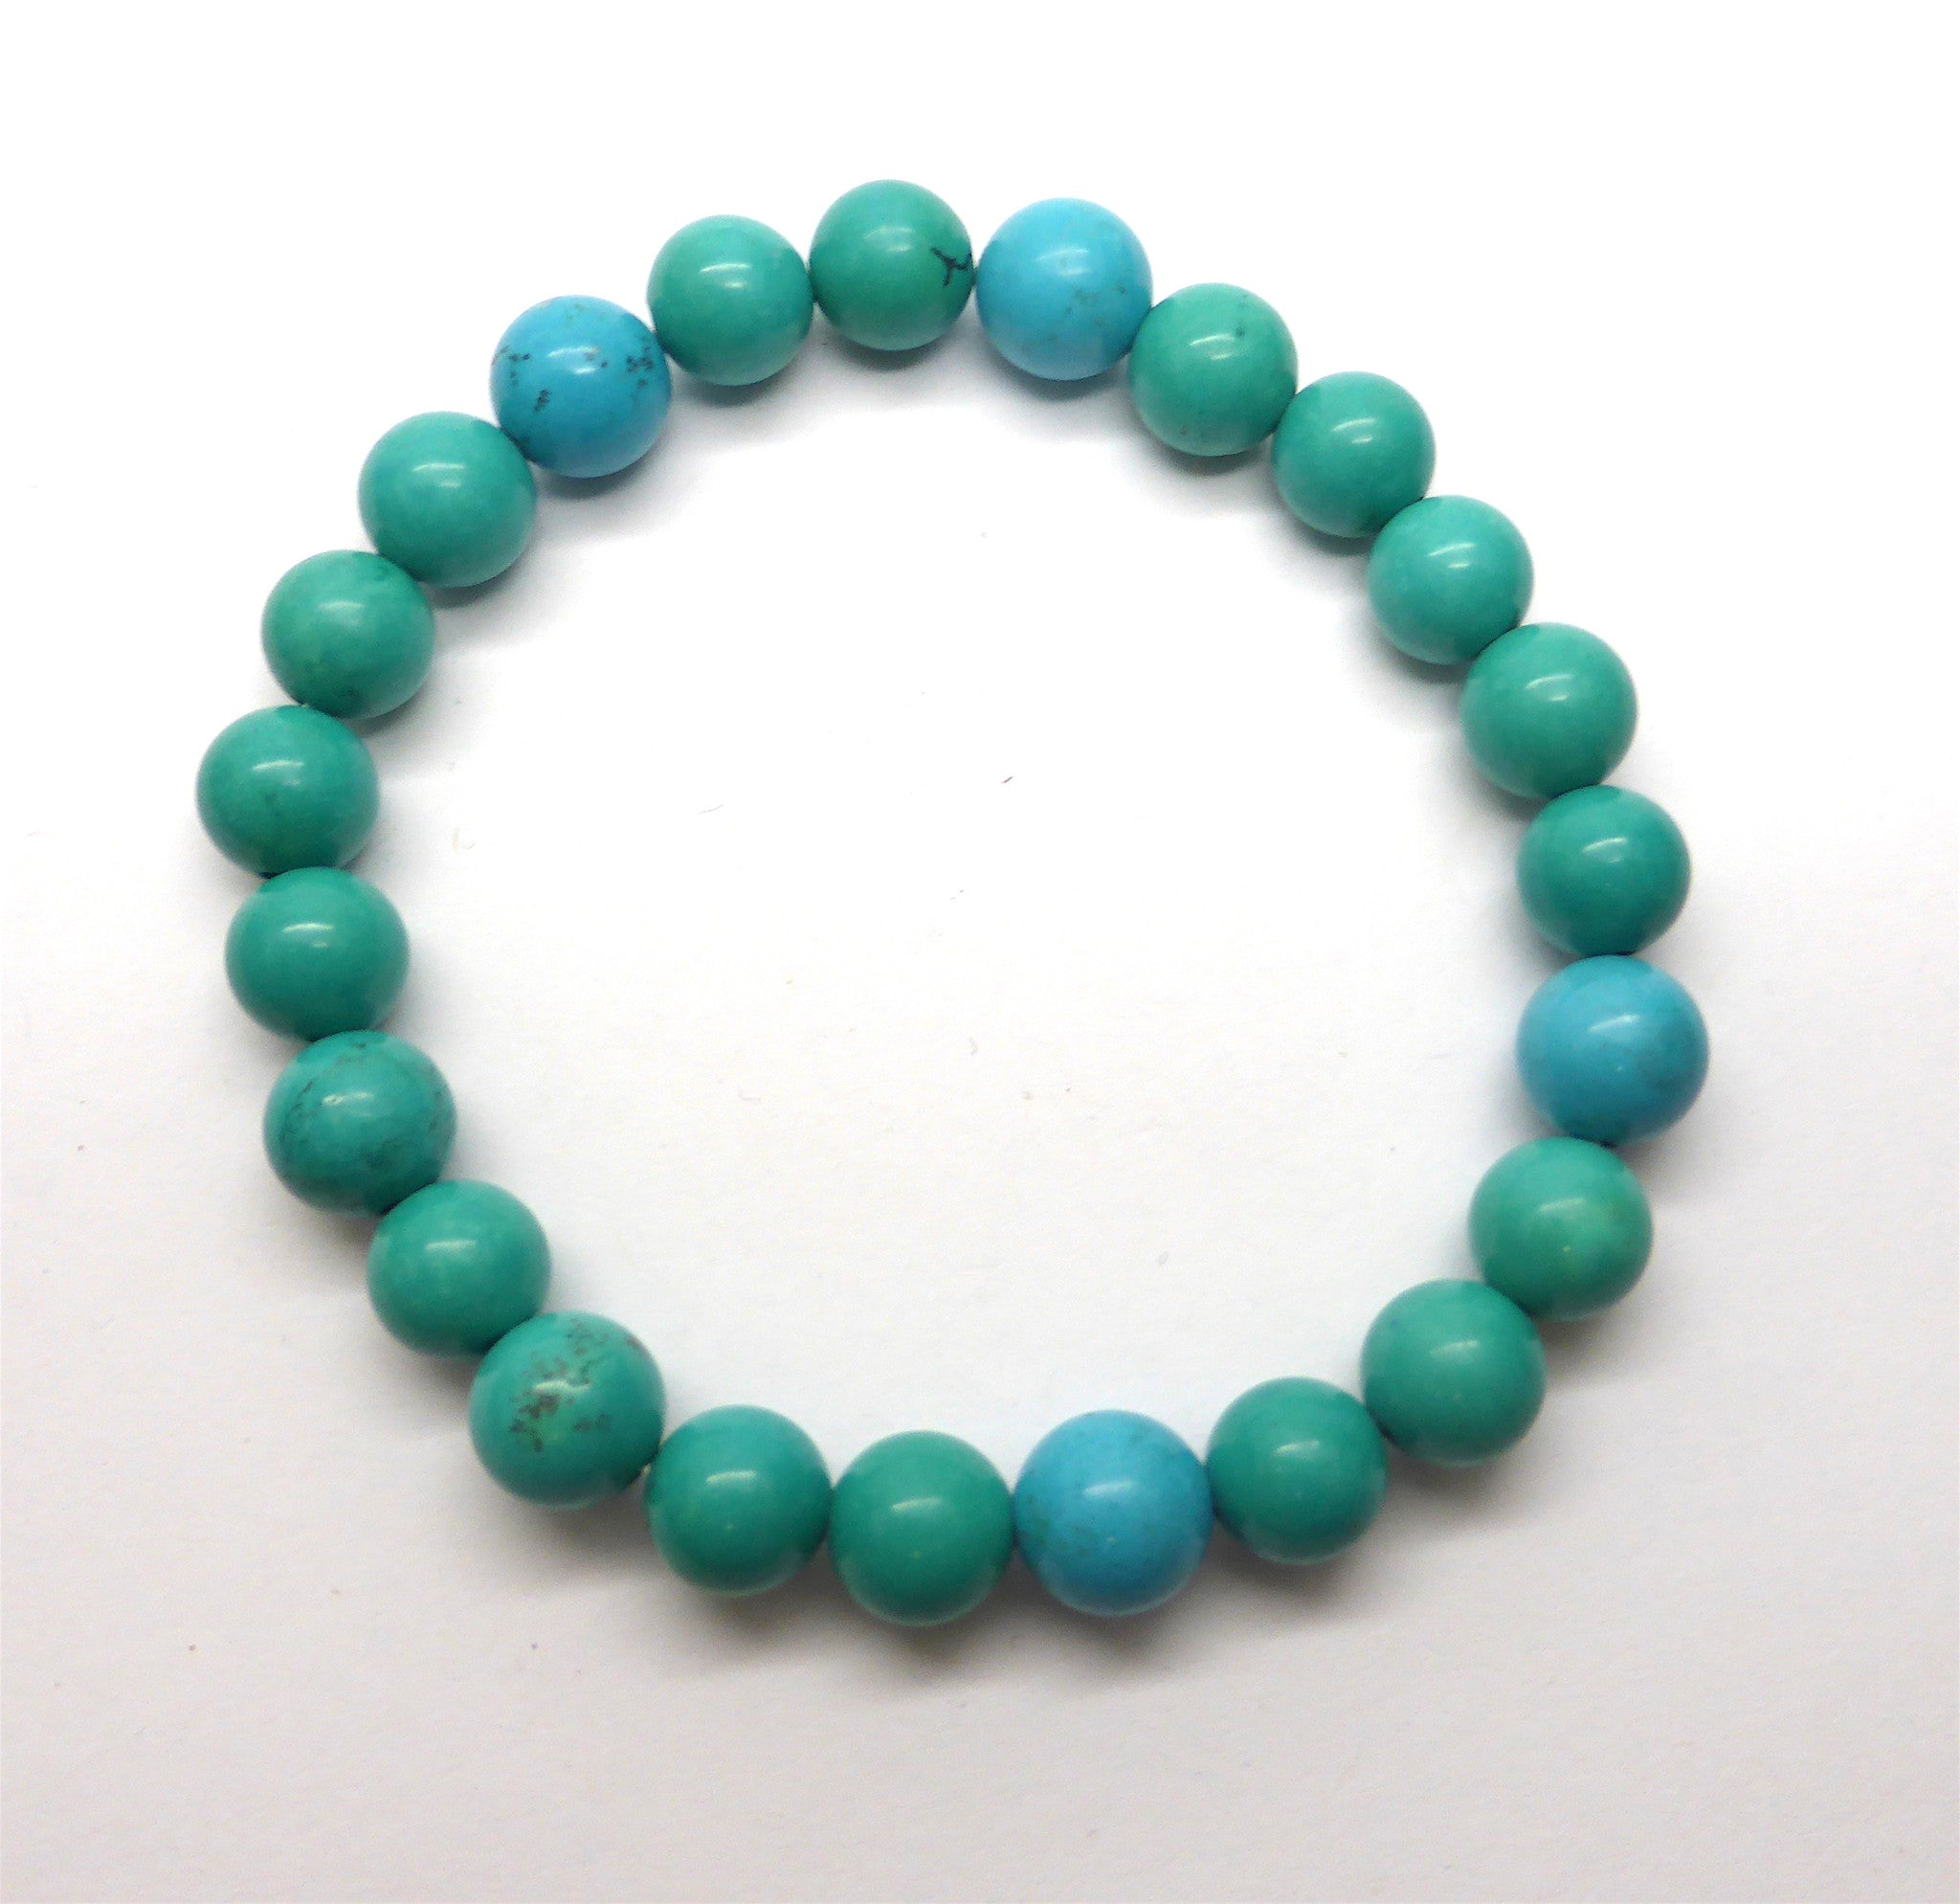 Turquoise Bead Stretch Bracelet | 8 mm beads Fair Trade Made in our own workshop | Crystal heart Melbourne Australia since 1986